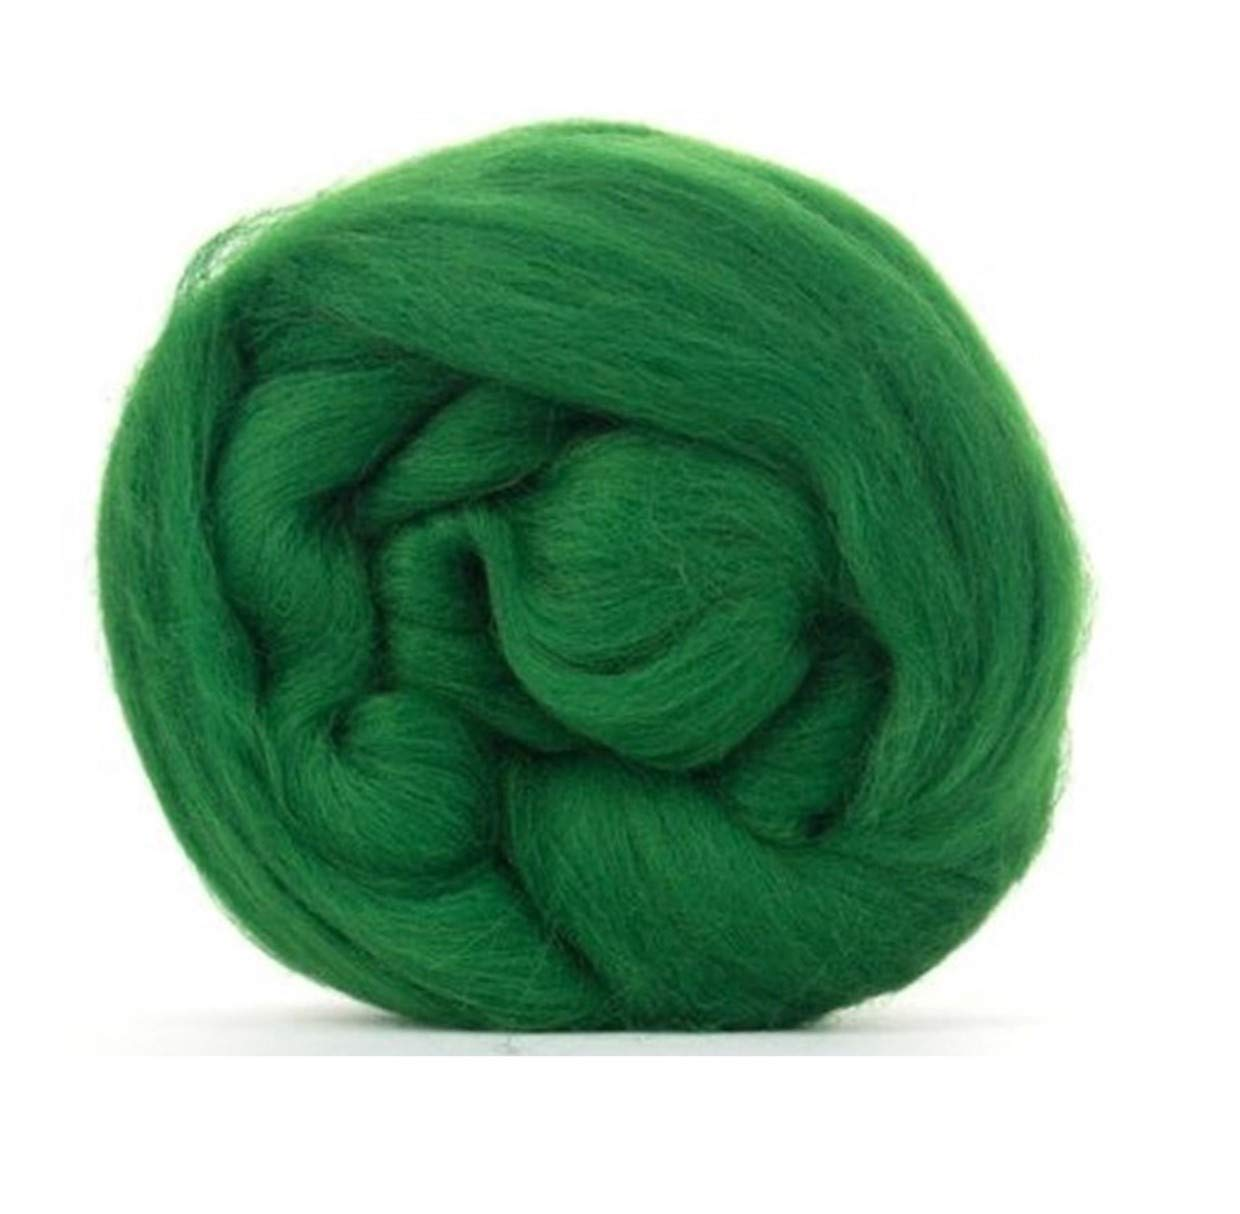 Forest Green Merino Wool roving/Tops - 50gm. Great for Wet Felting/Needle Felting, and Hand Spinning Projects.